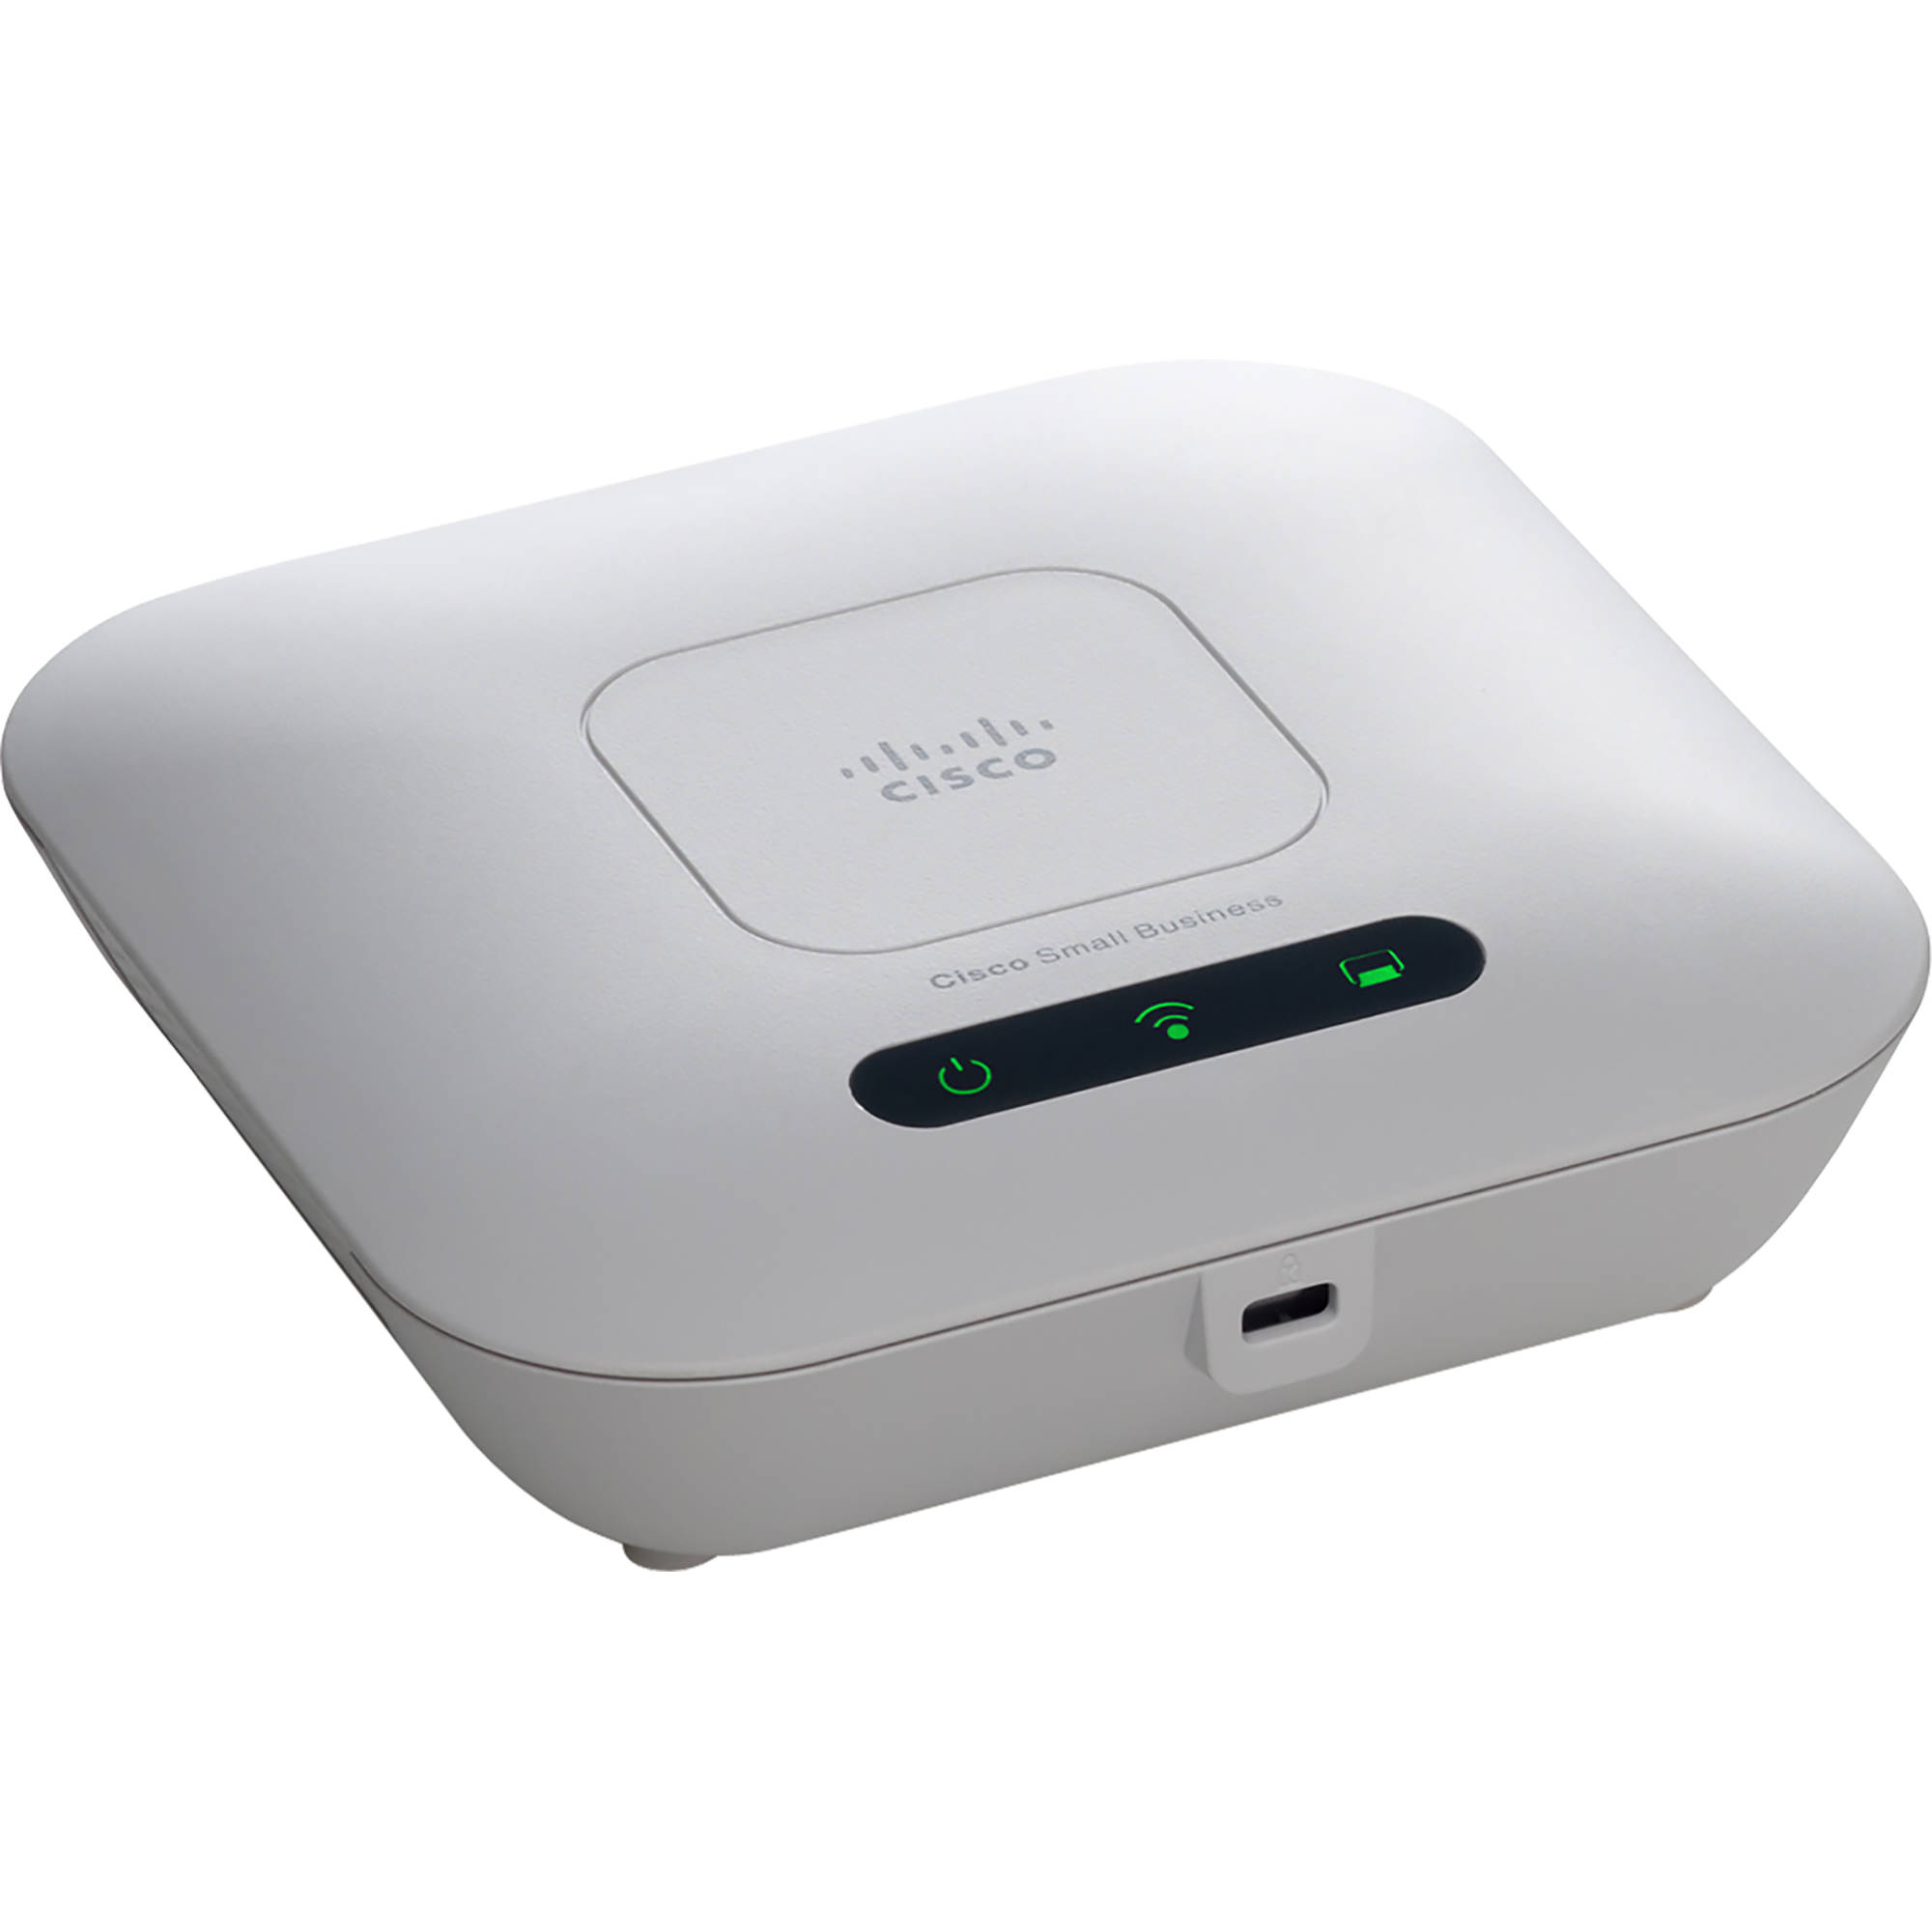 Cisco Wap121 A K9 Wireless N Access Point Na Bh Router Wan Port Connect The With Single Setup